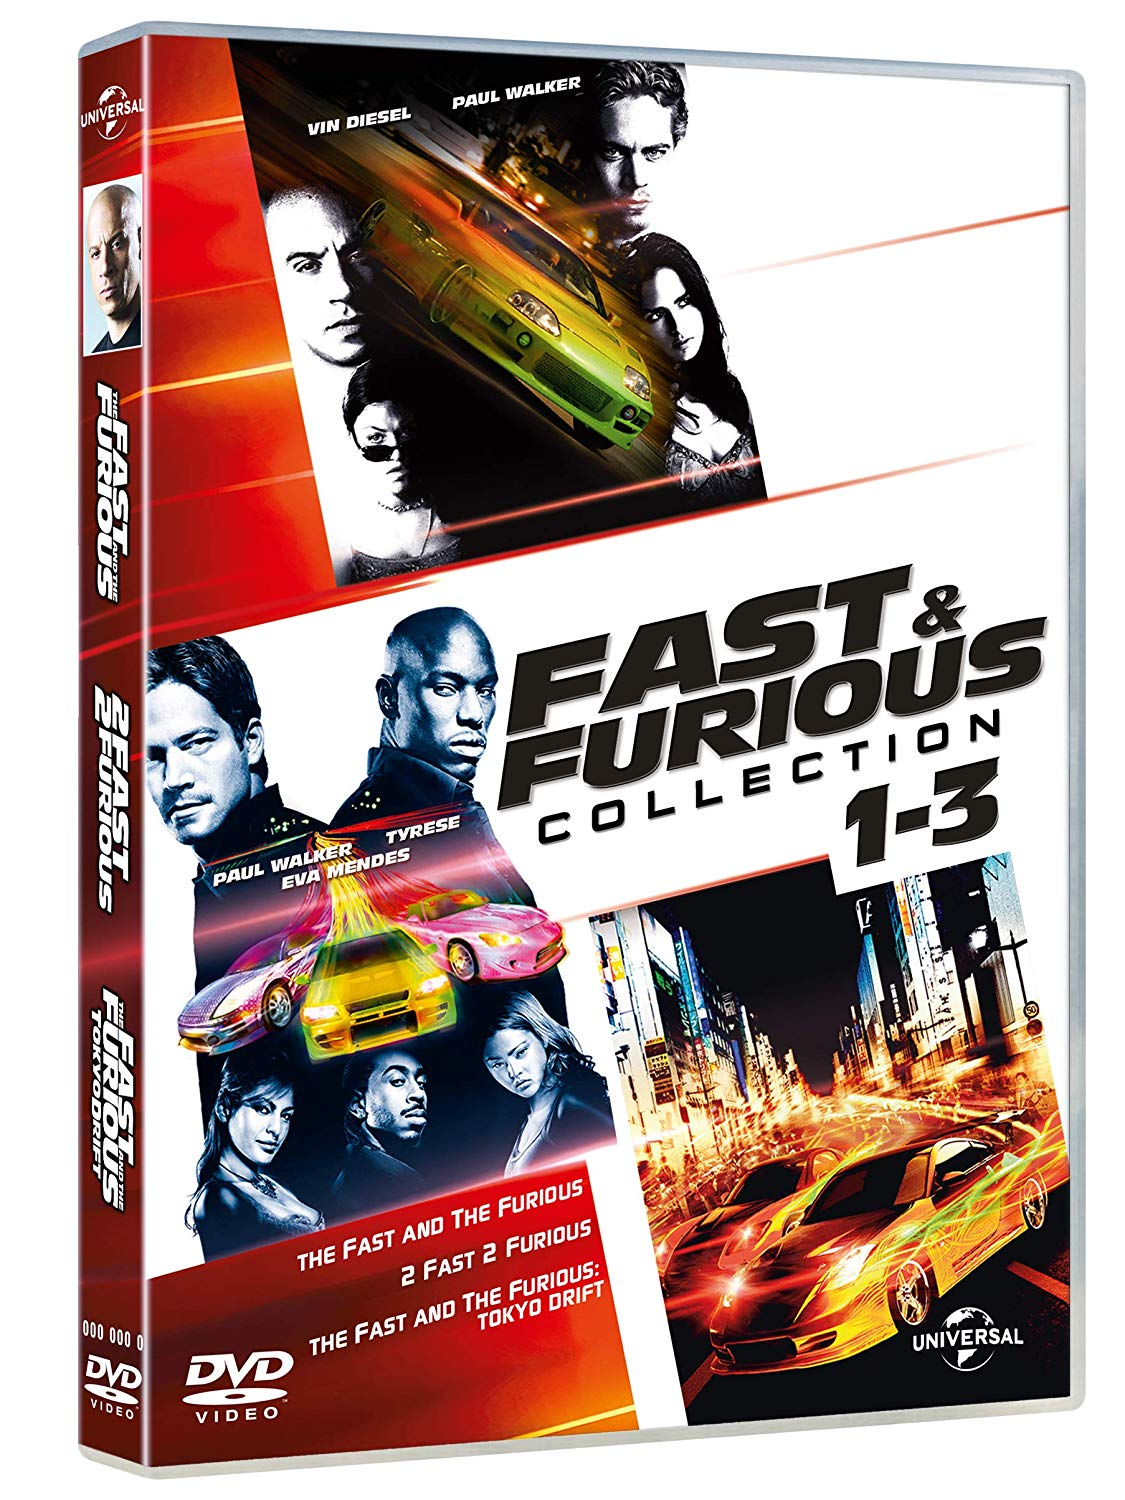 COF.FAST & FURIOUS TUNING COLLECTION (3 DVD) (DVD)